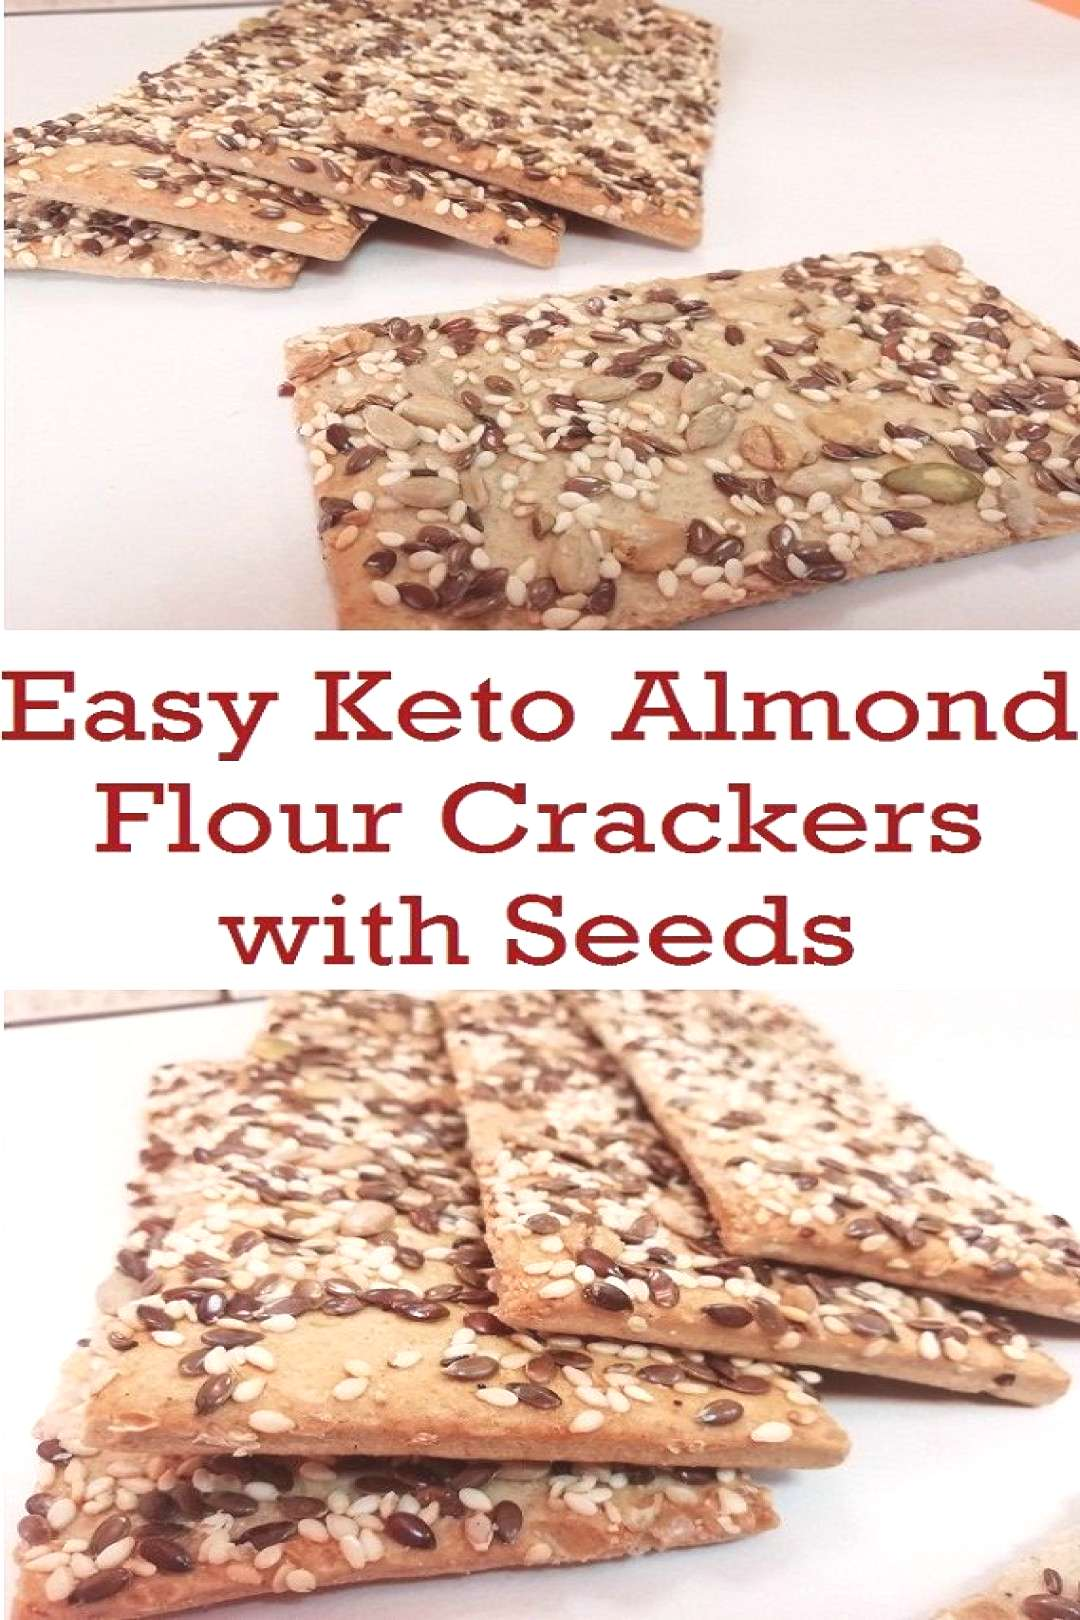 These gluten-free keto crackers are not just deliciously crispy. Pairing these crackers with salted